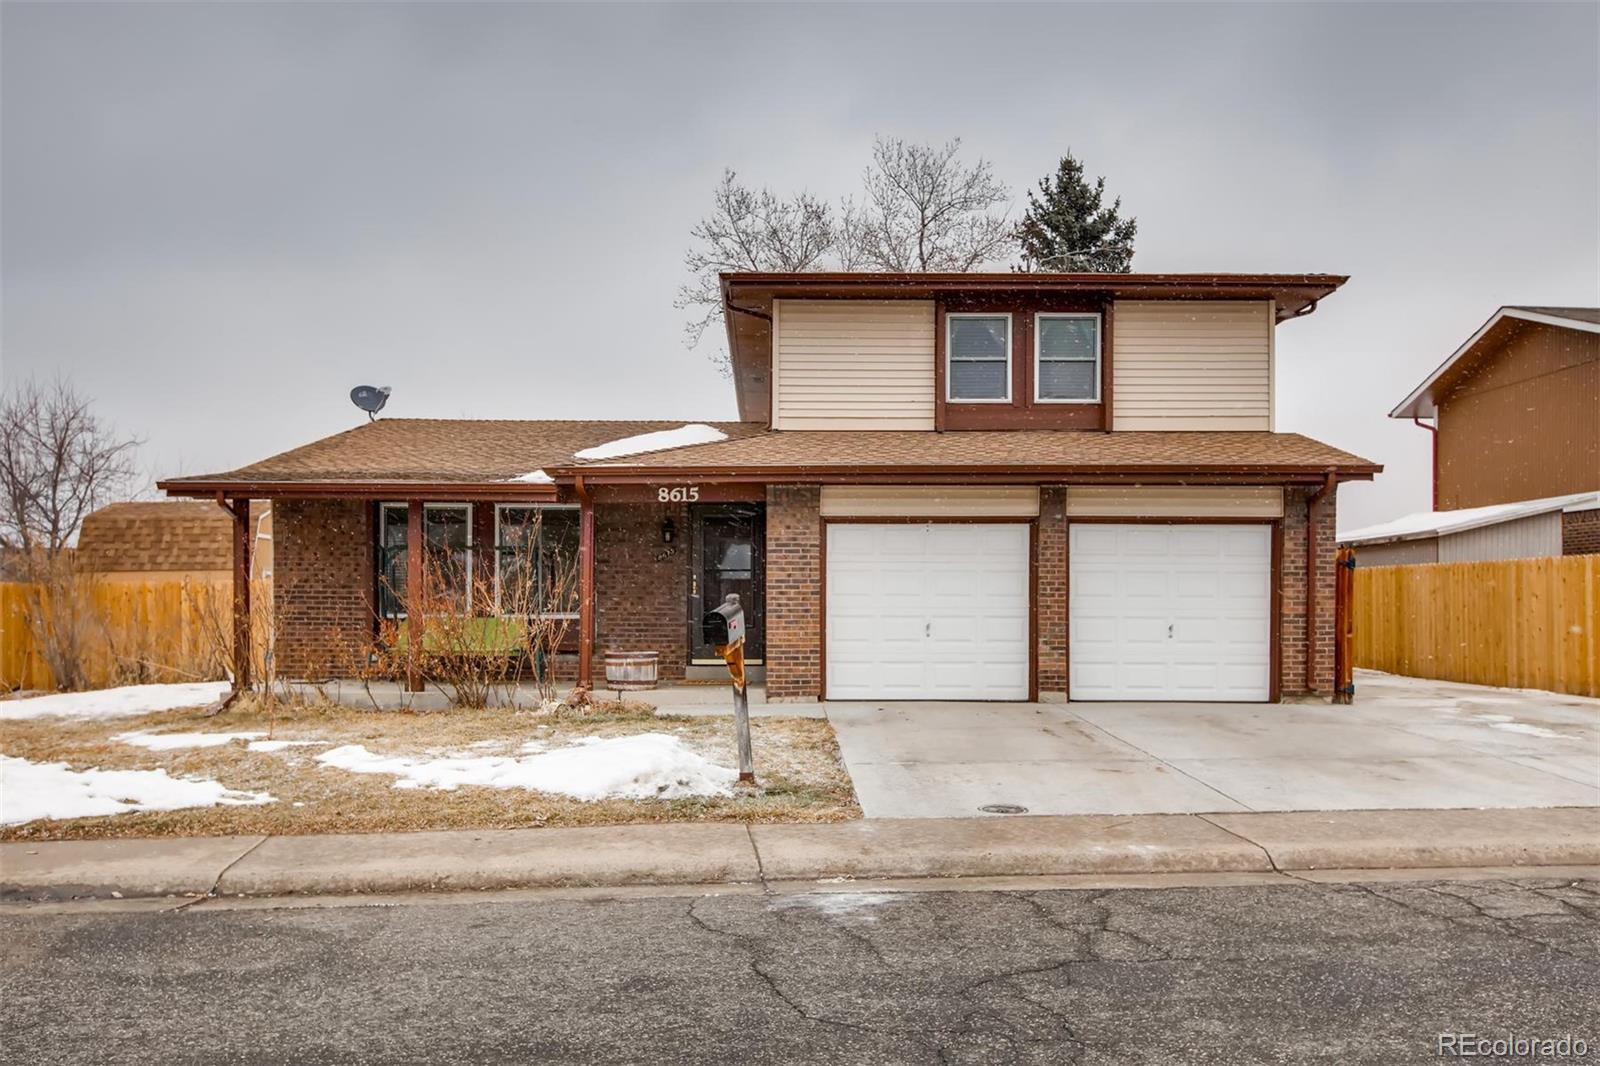 MLS# 2991178 - 22 - 8615 W 78th Place, Arvada, CO 80005